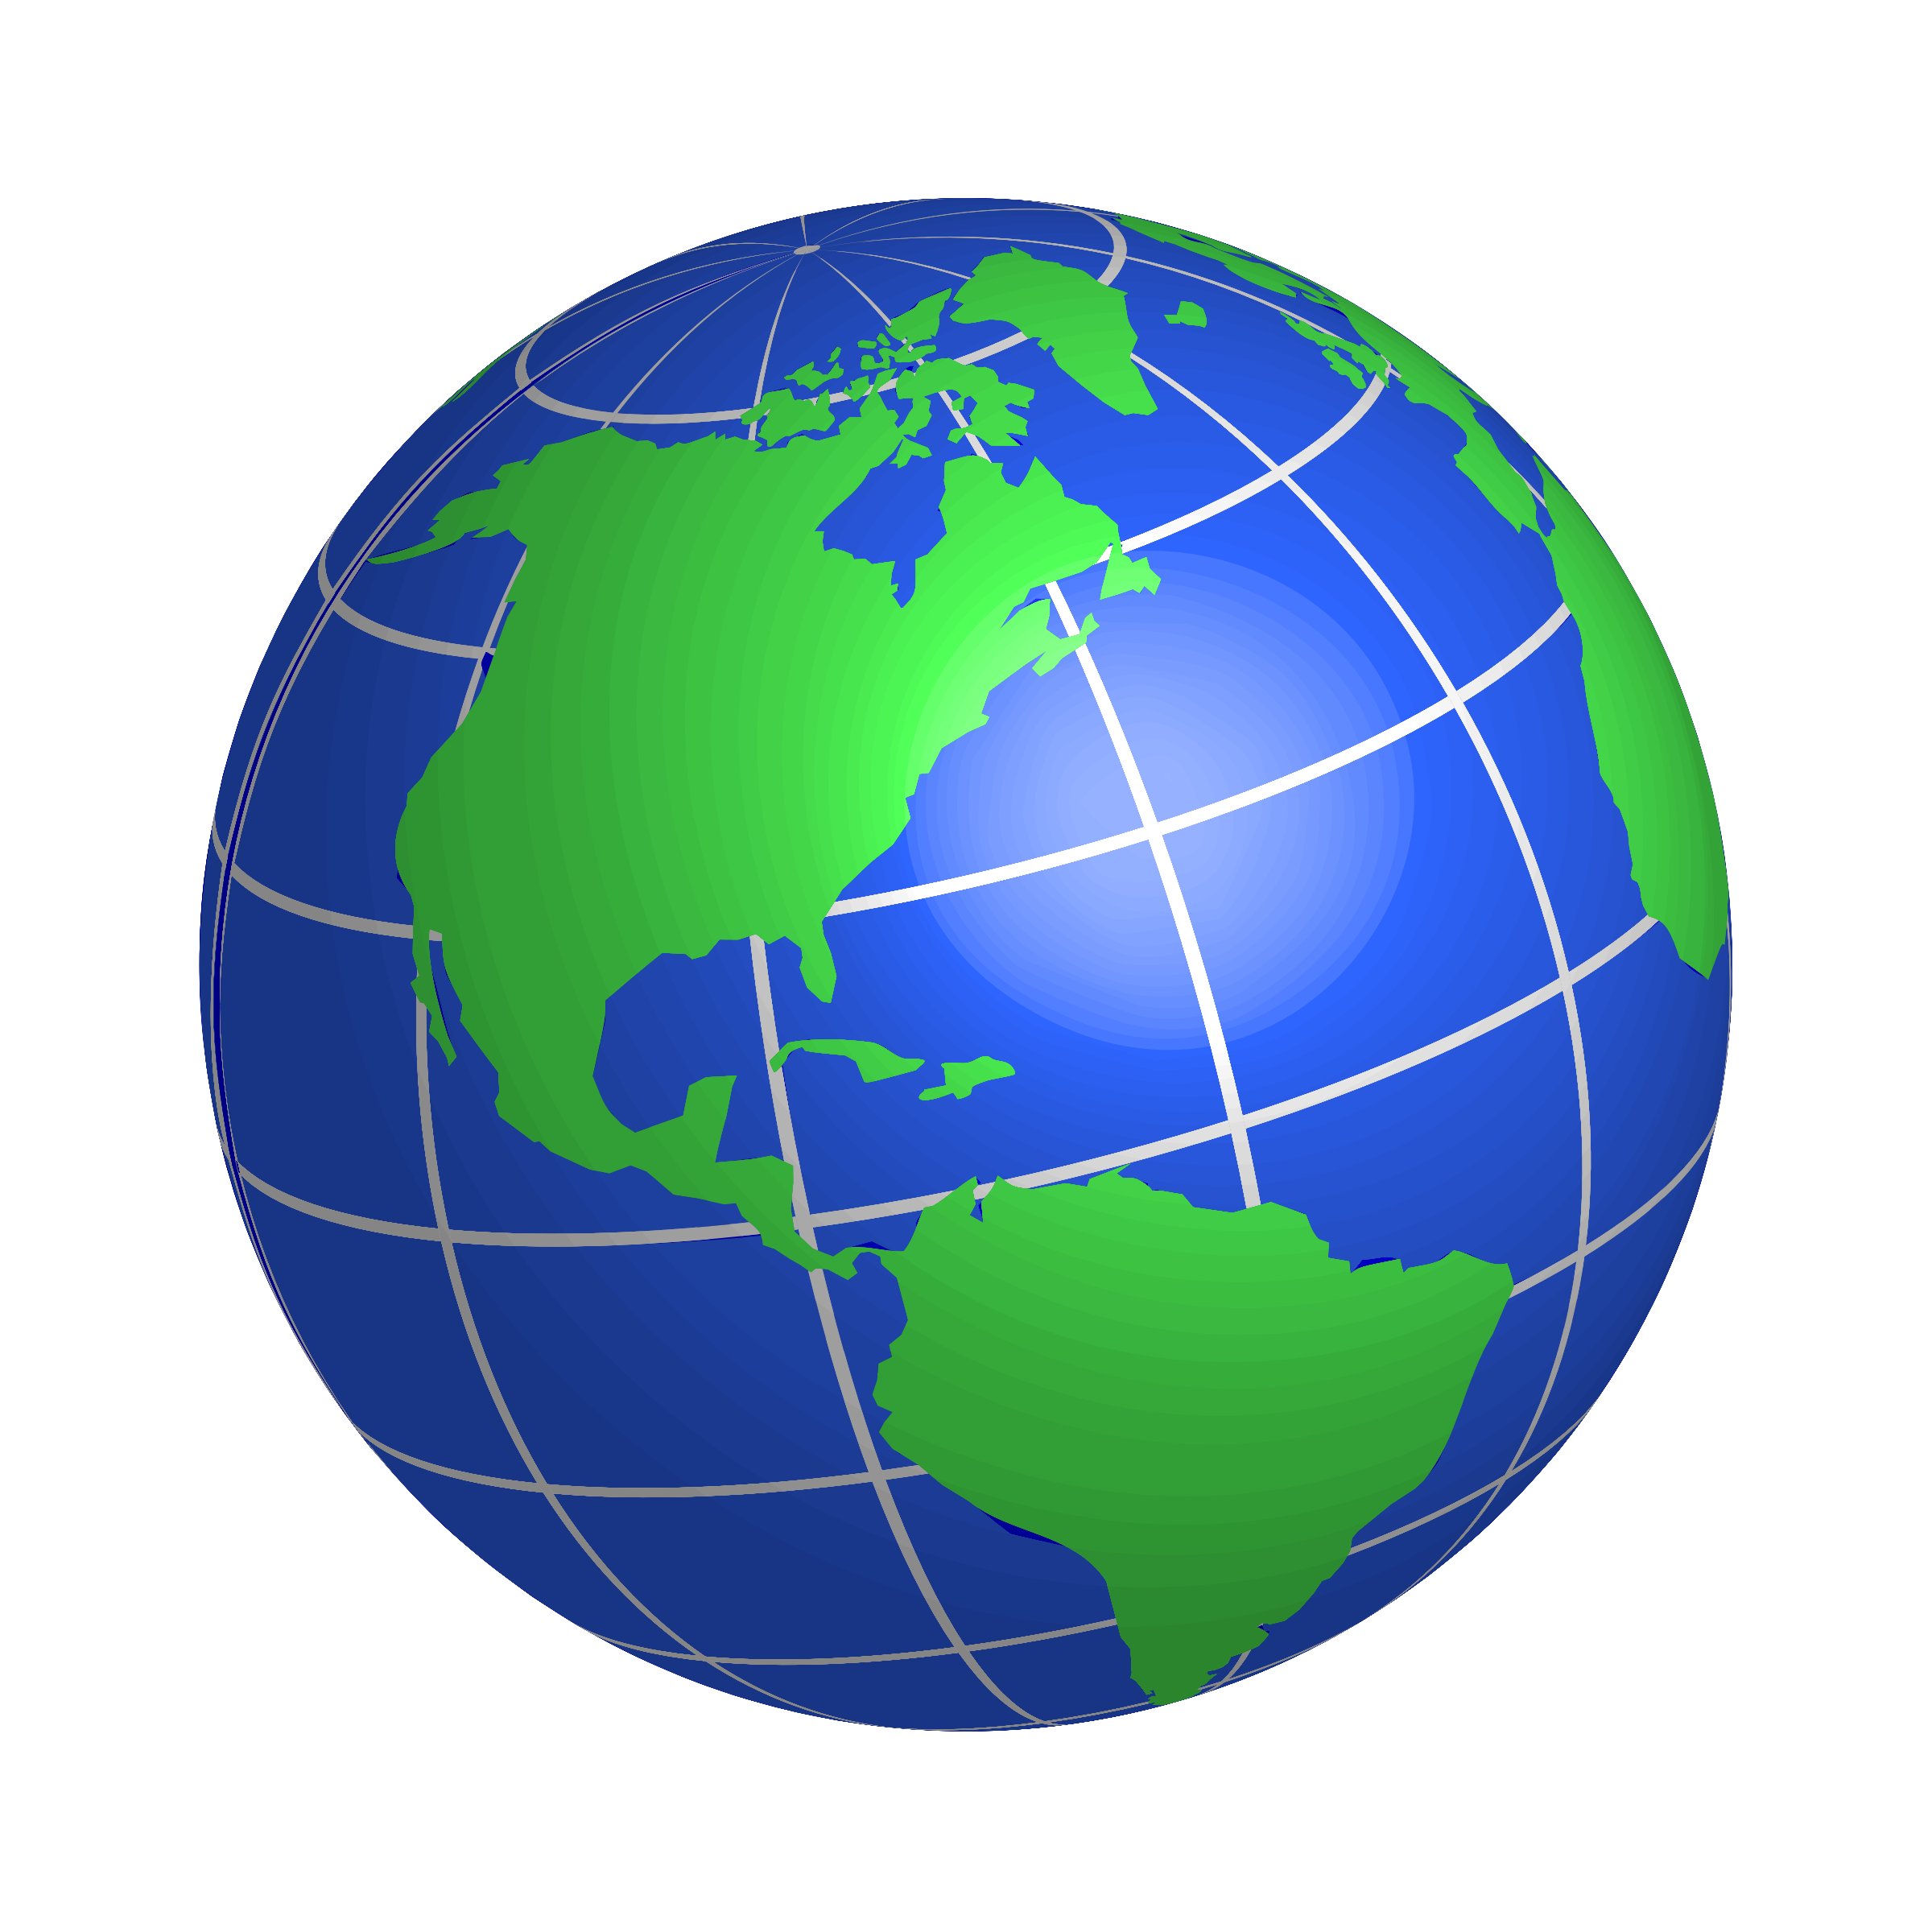 Globe clipart free clipart image